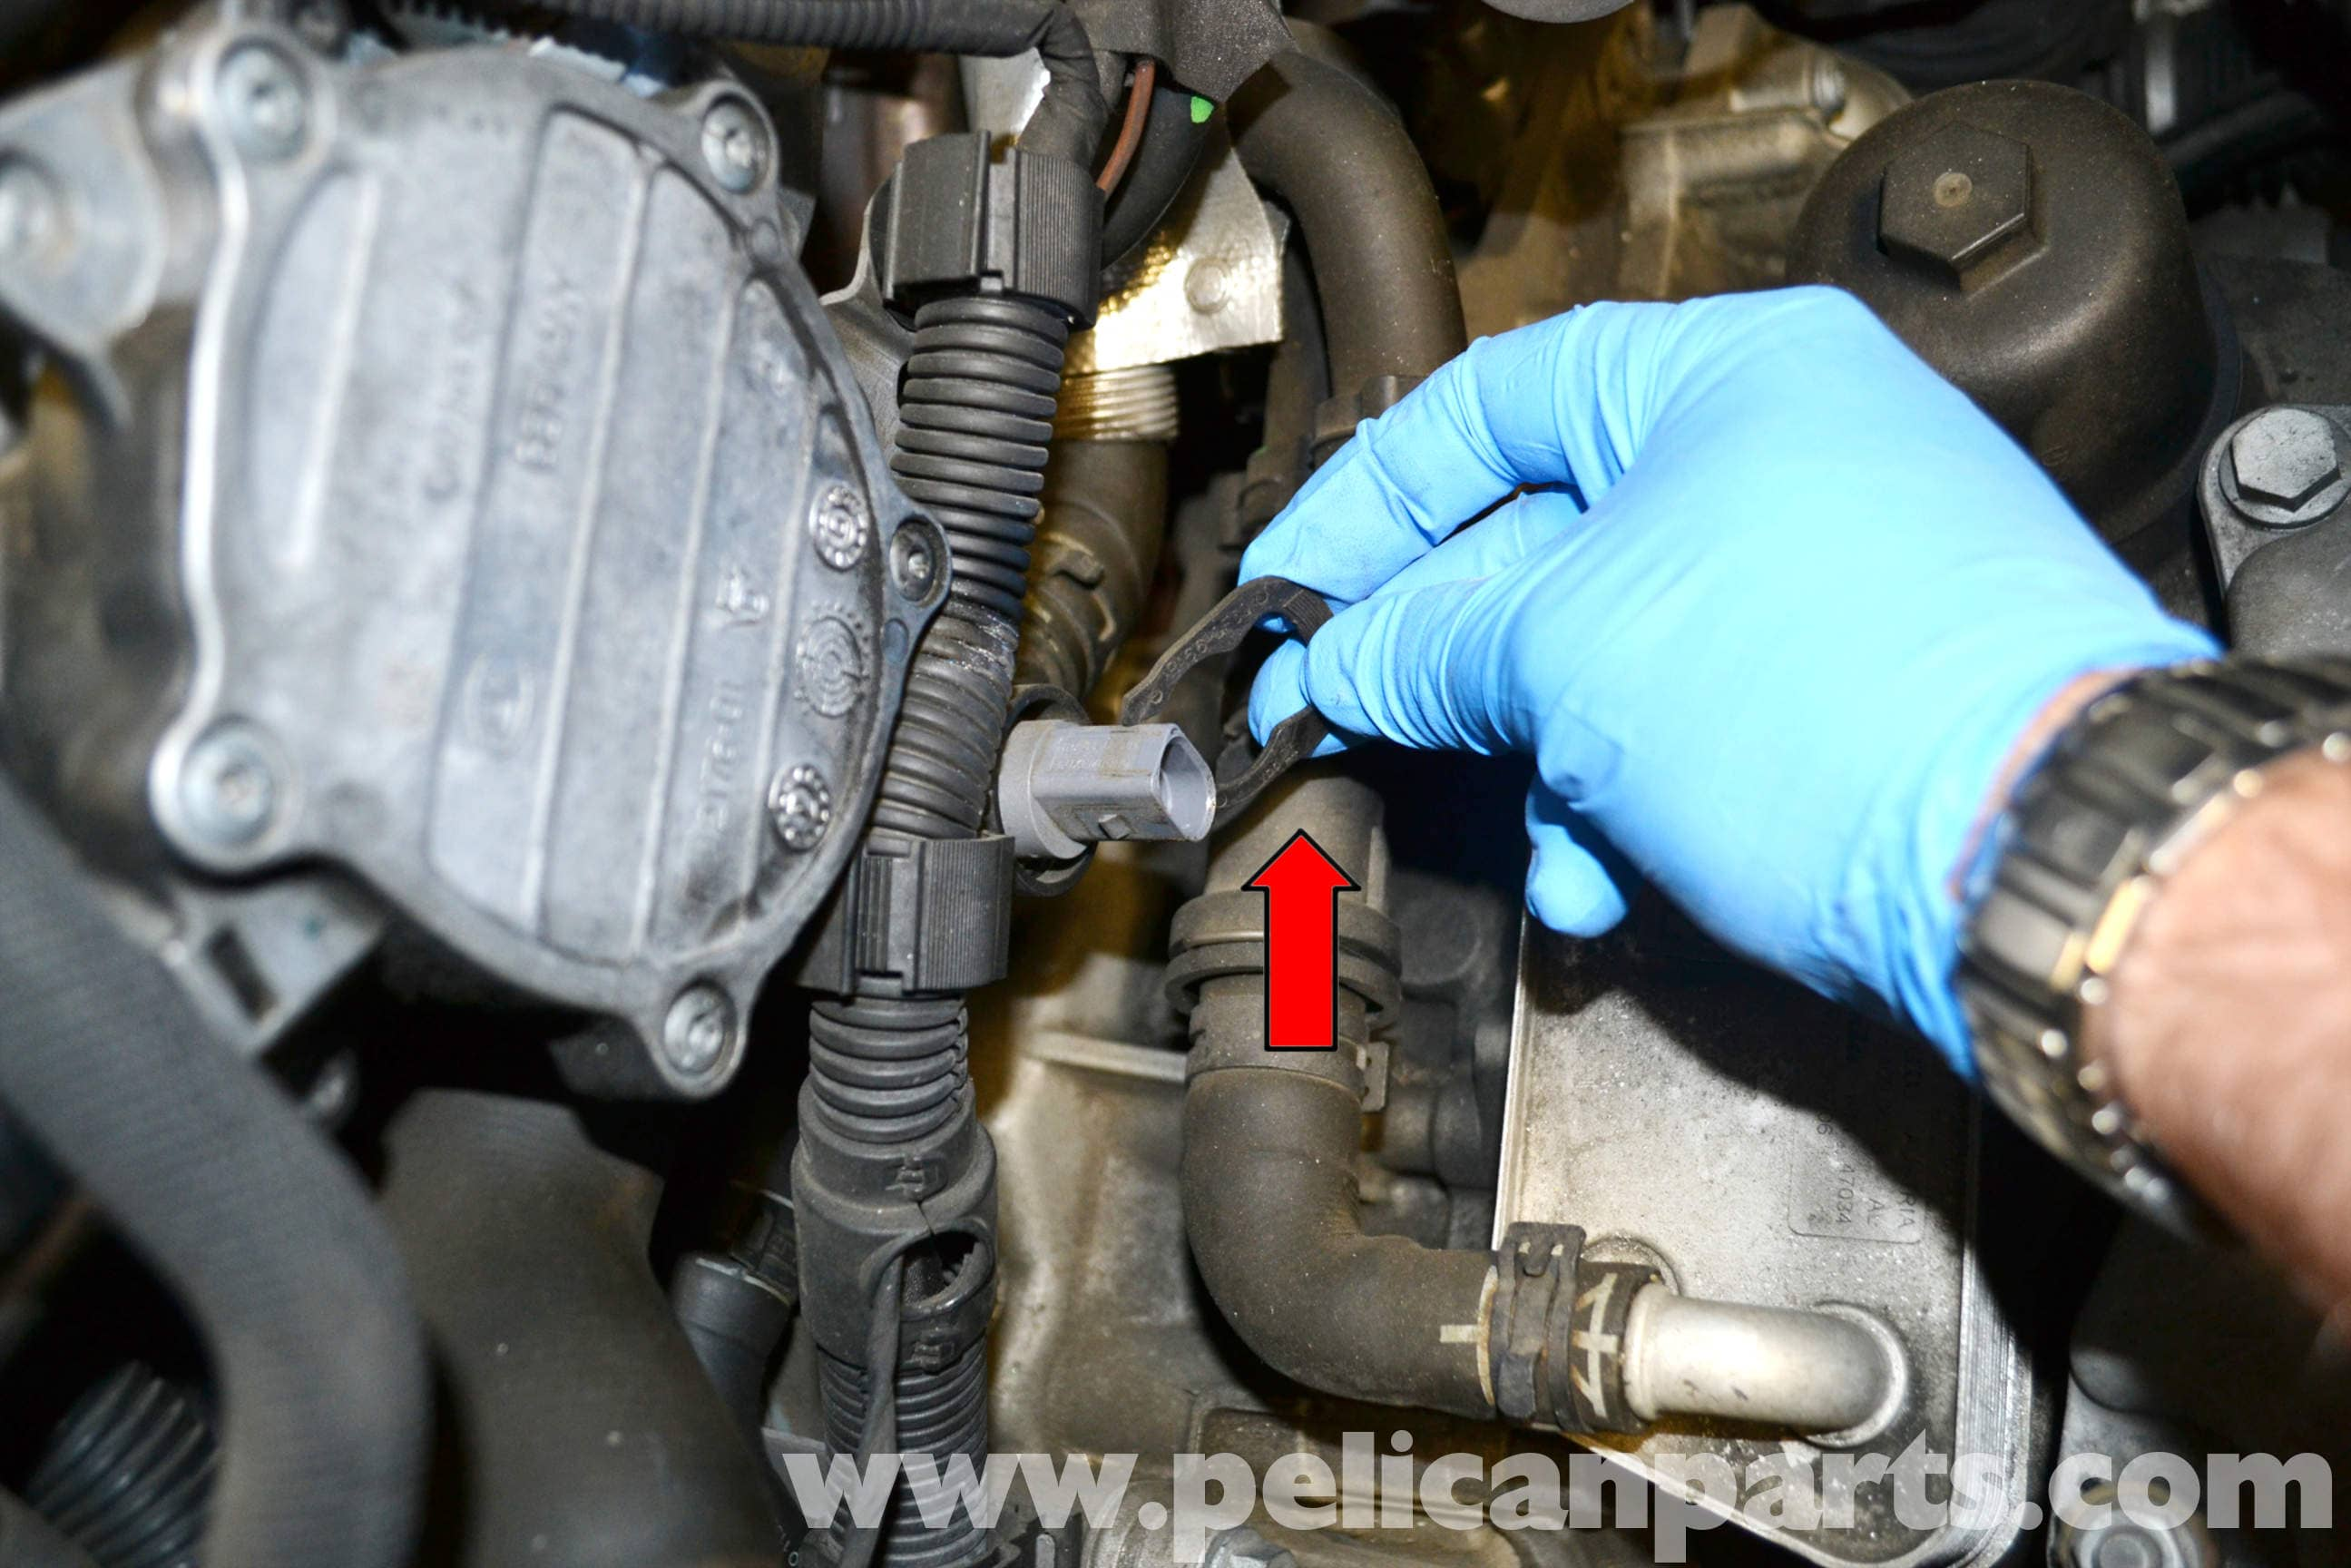 Volkswagen Golf Gti Mk V Coolant Temperature Sensor Replacement Gm Engine Large Image Extra